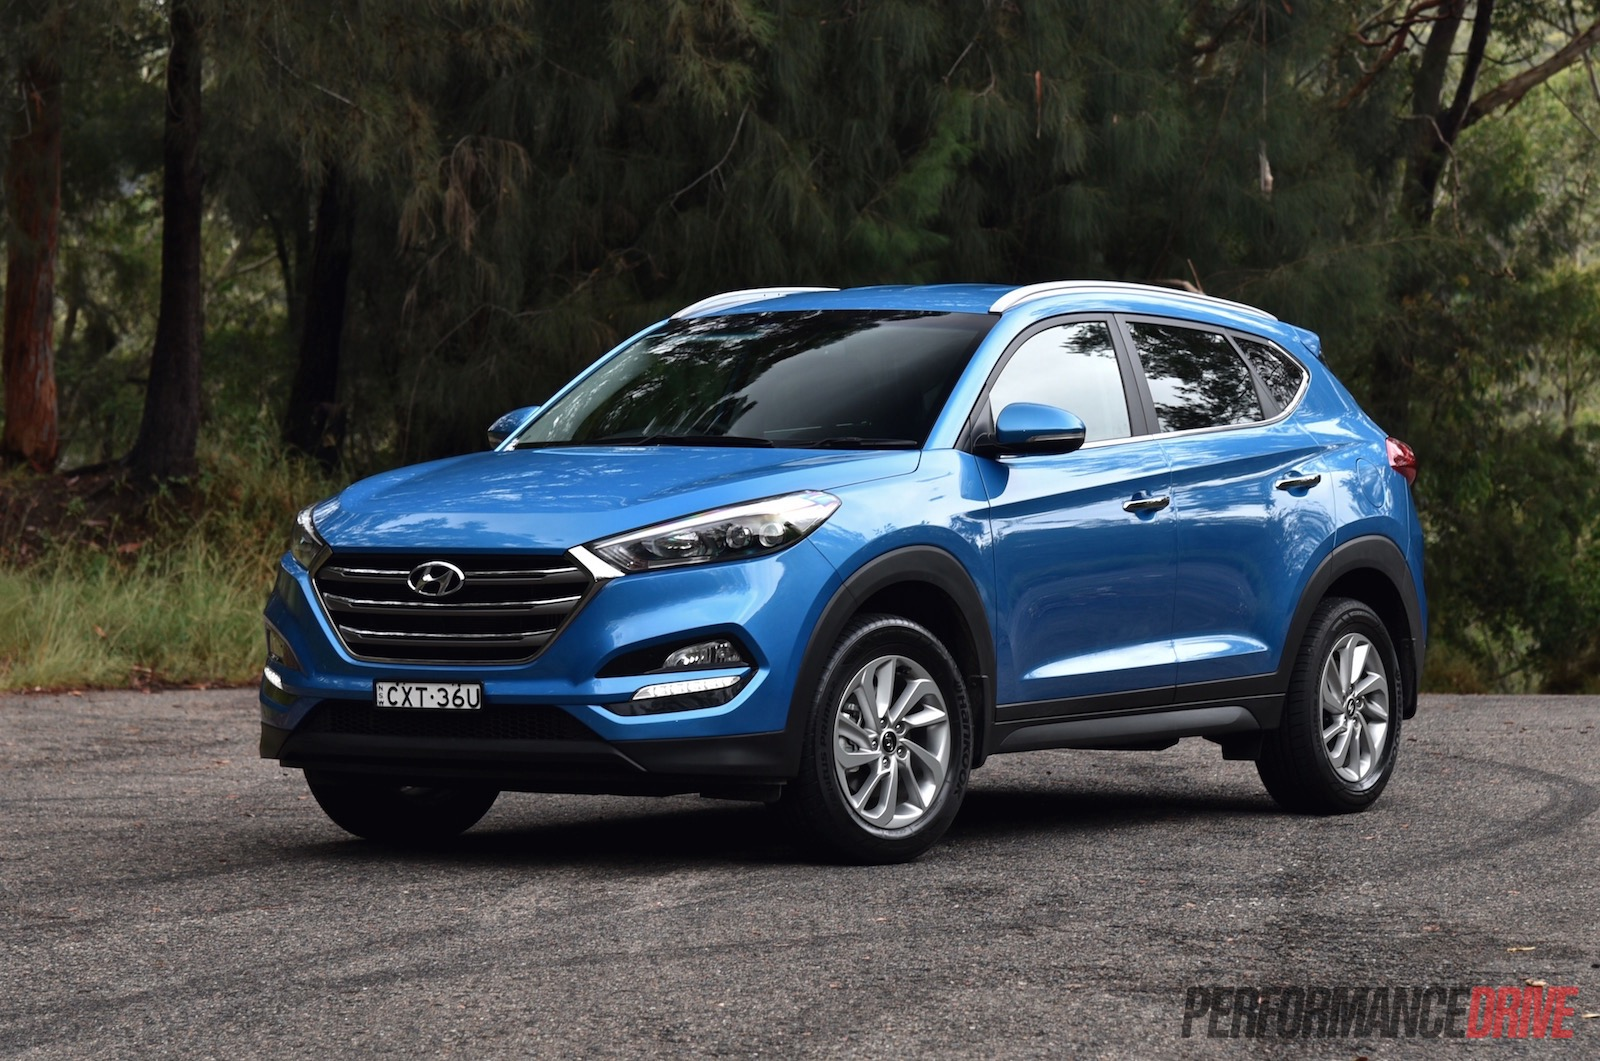 2016 Hyundai Sonata >> Hyundai Tucson Elite 1.6T review (video) | PerformanceDrive